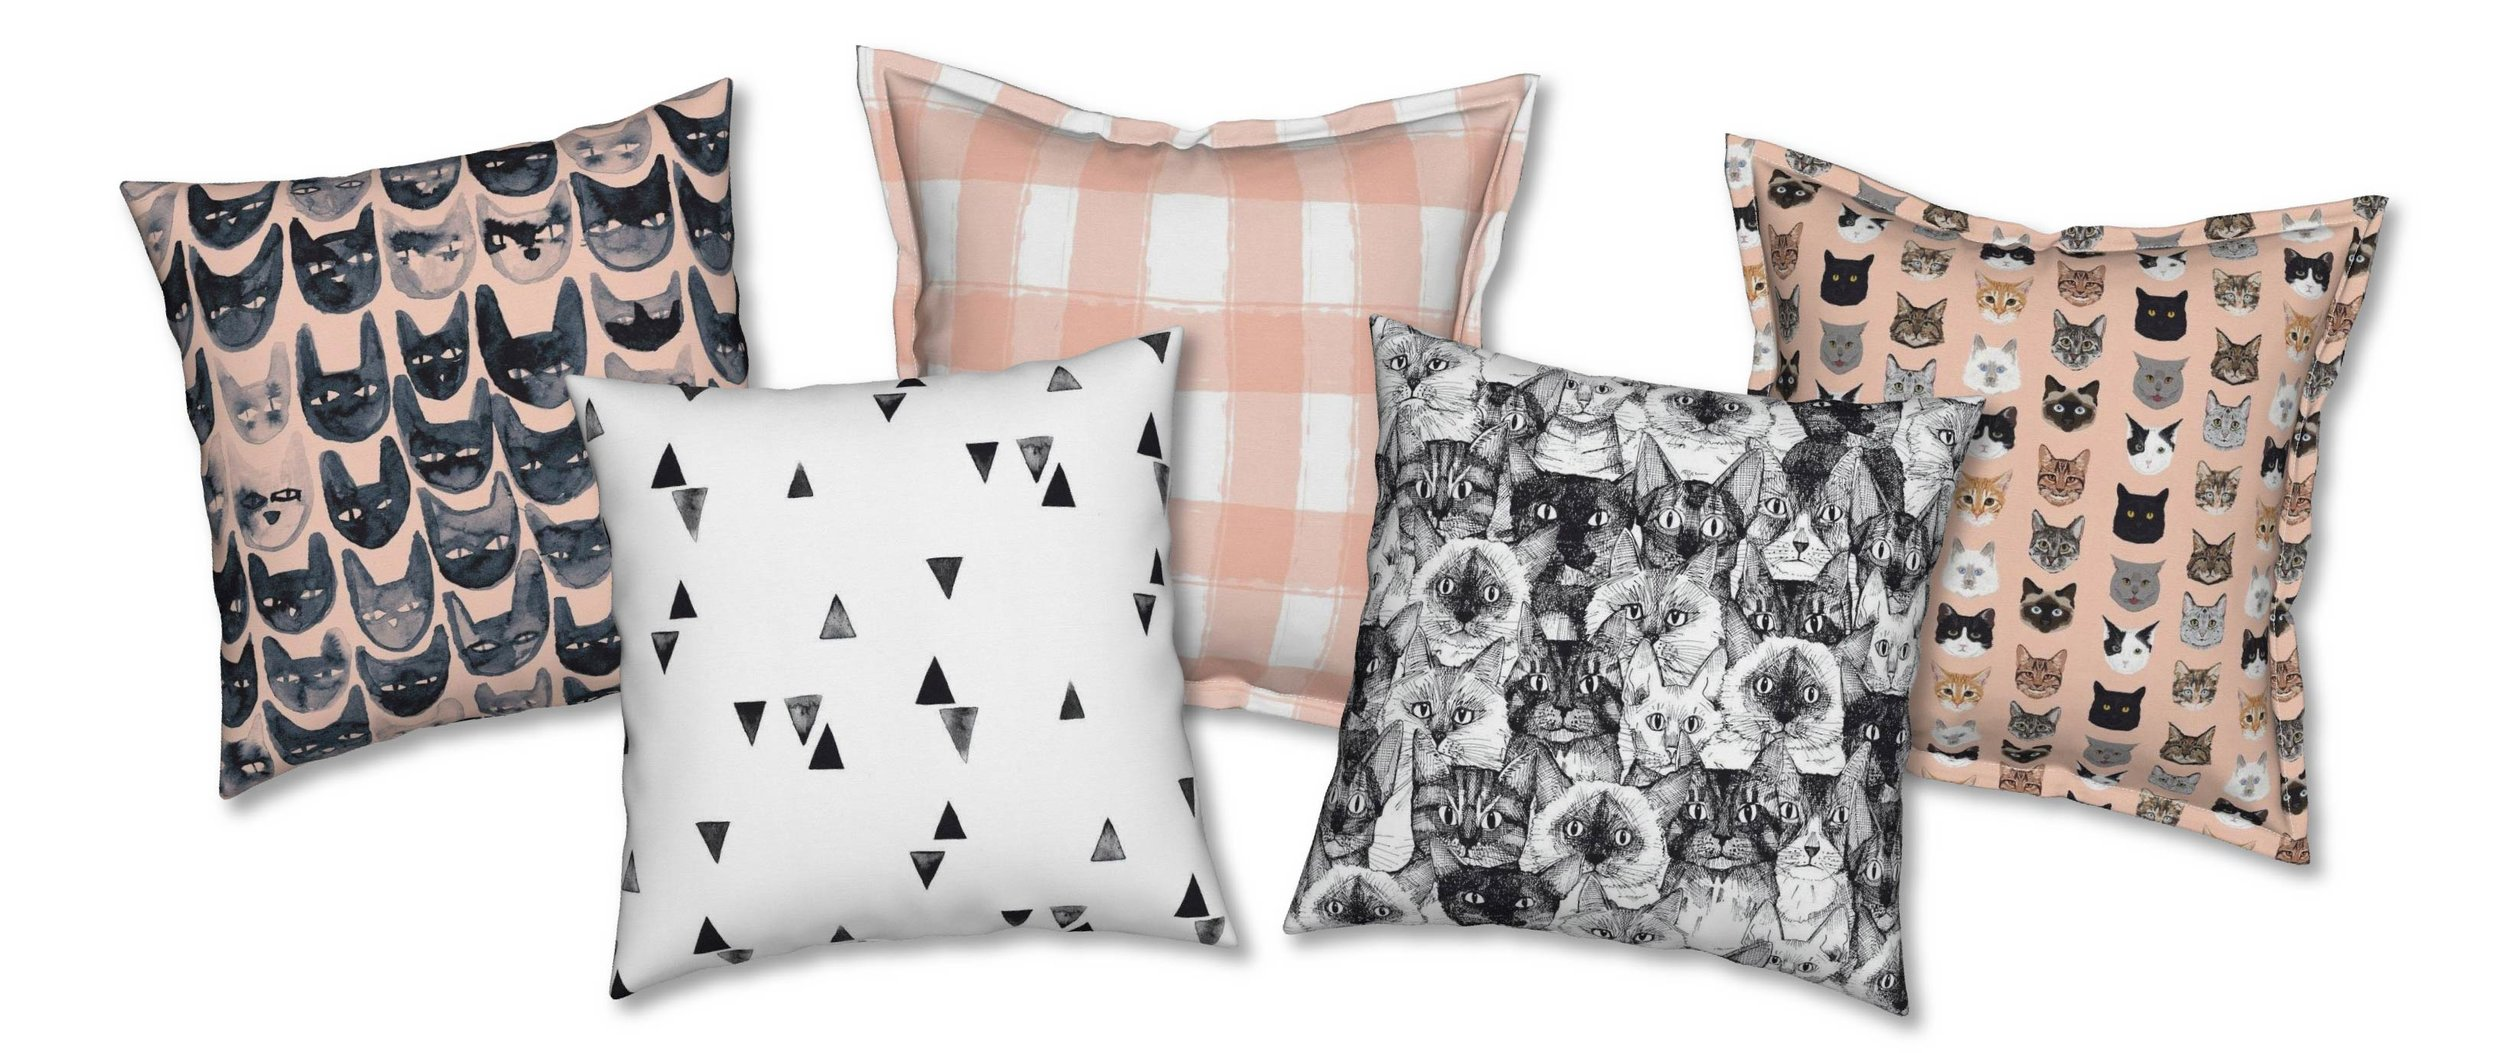 Black Cat Faces Catalan Pillow  by  MsJordanKay ;  Watercolor Triangles Catalan Pillow  by  TaraPut ;  Watercolor Check in Coral Serama Pillow  by  AverieLaneBoutique ;  Just Cats Catalan Pillow  by  Scrummy ;  Cat Faces Serama Pillow  by  PetFriendly